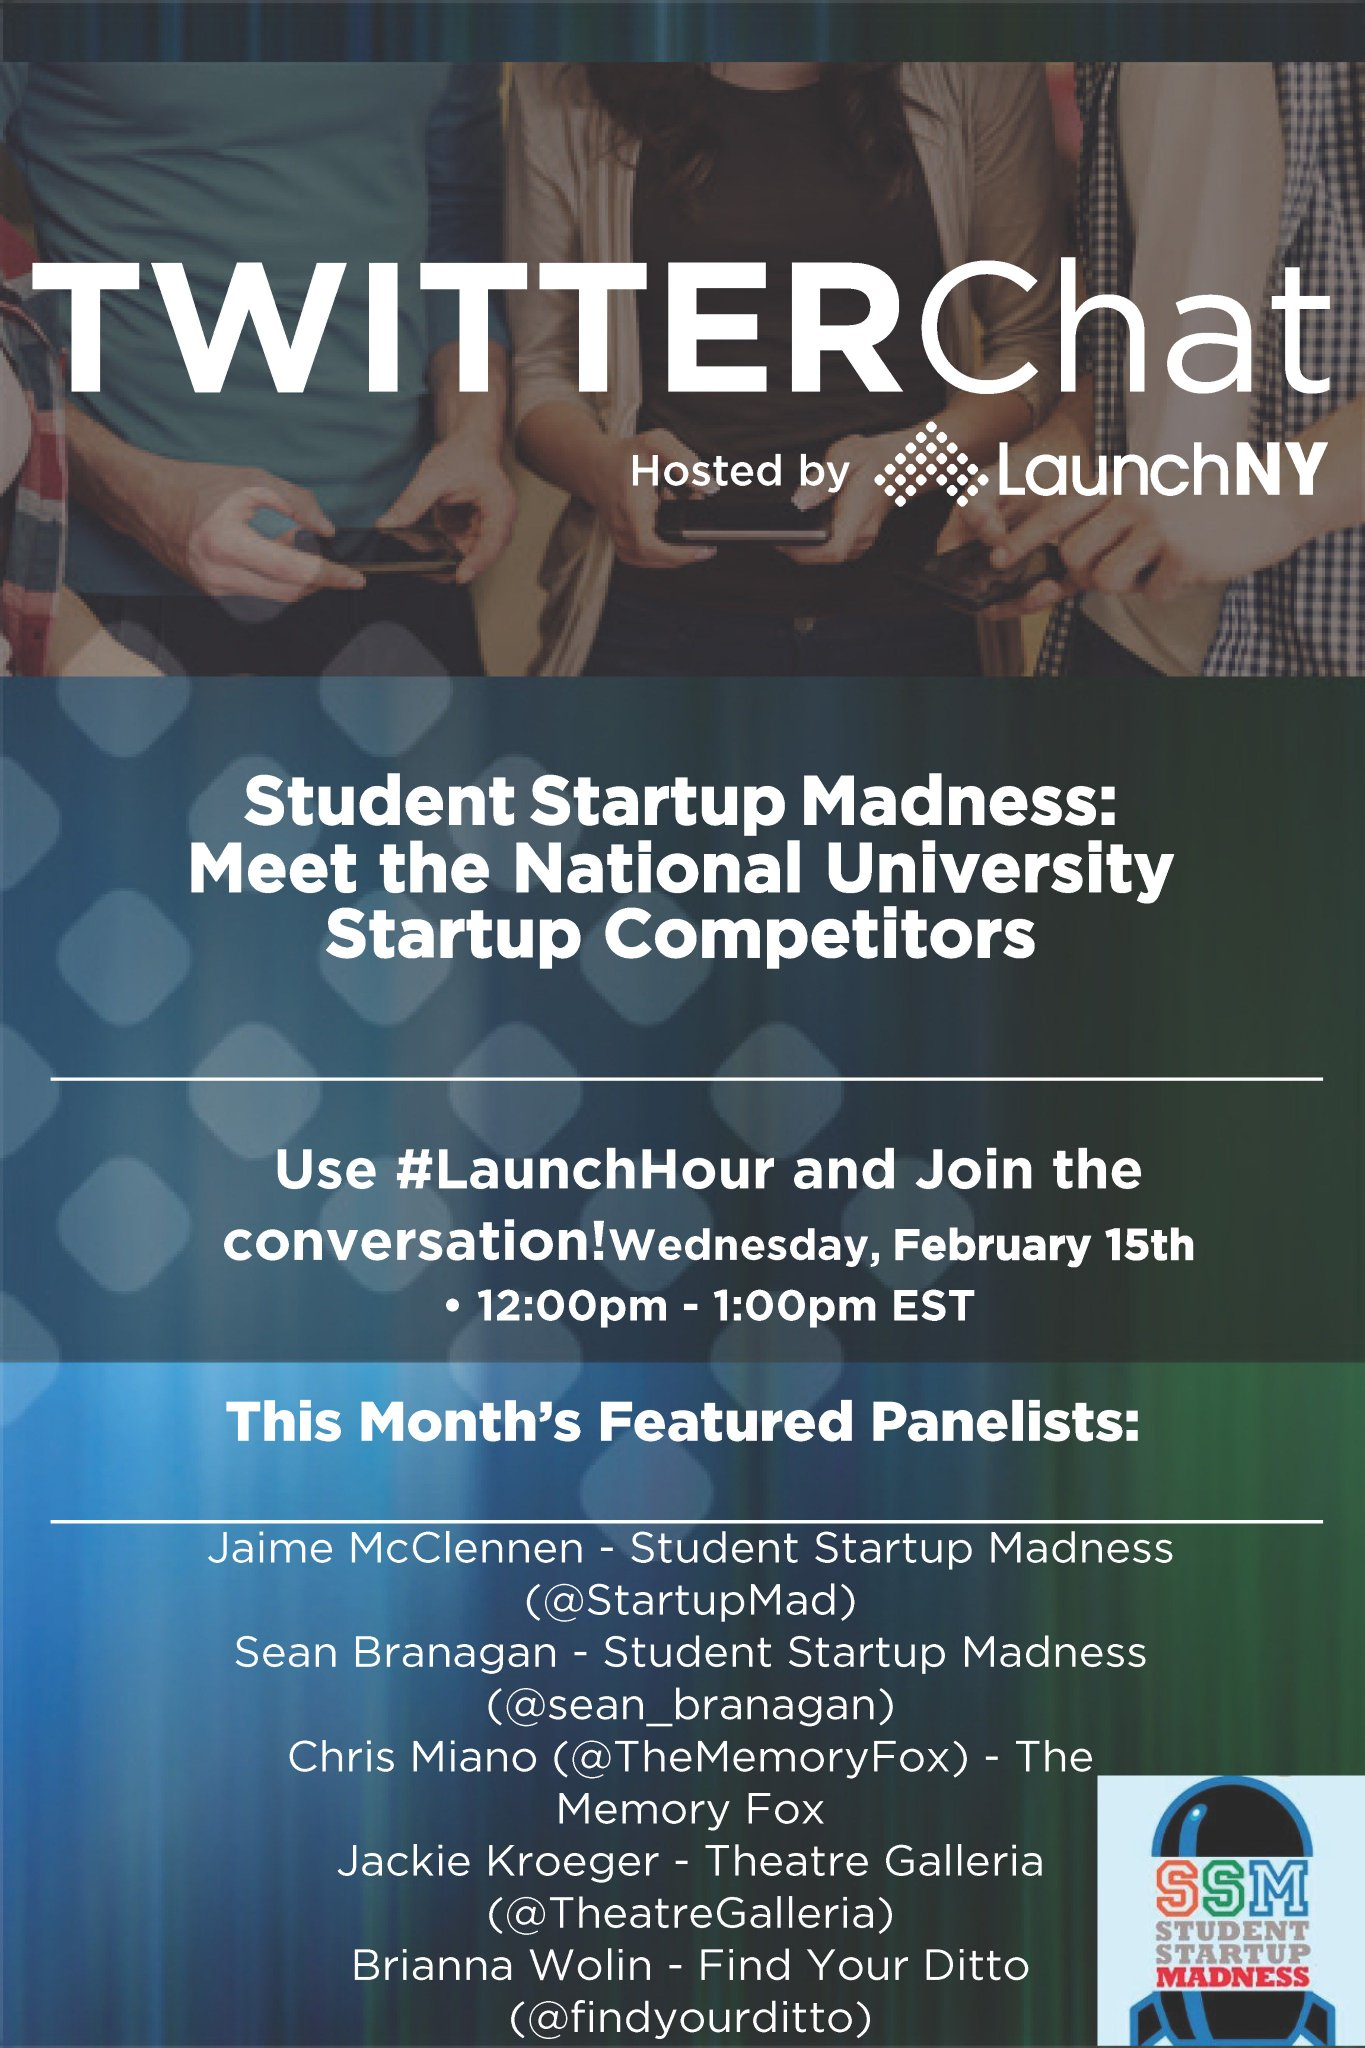 Don't forget tomorrow is #LaunchHour! https://t.co/5Oyn2brYaB